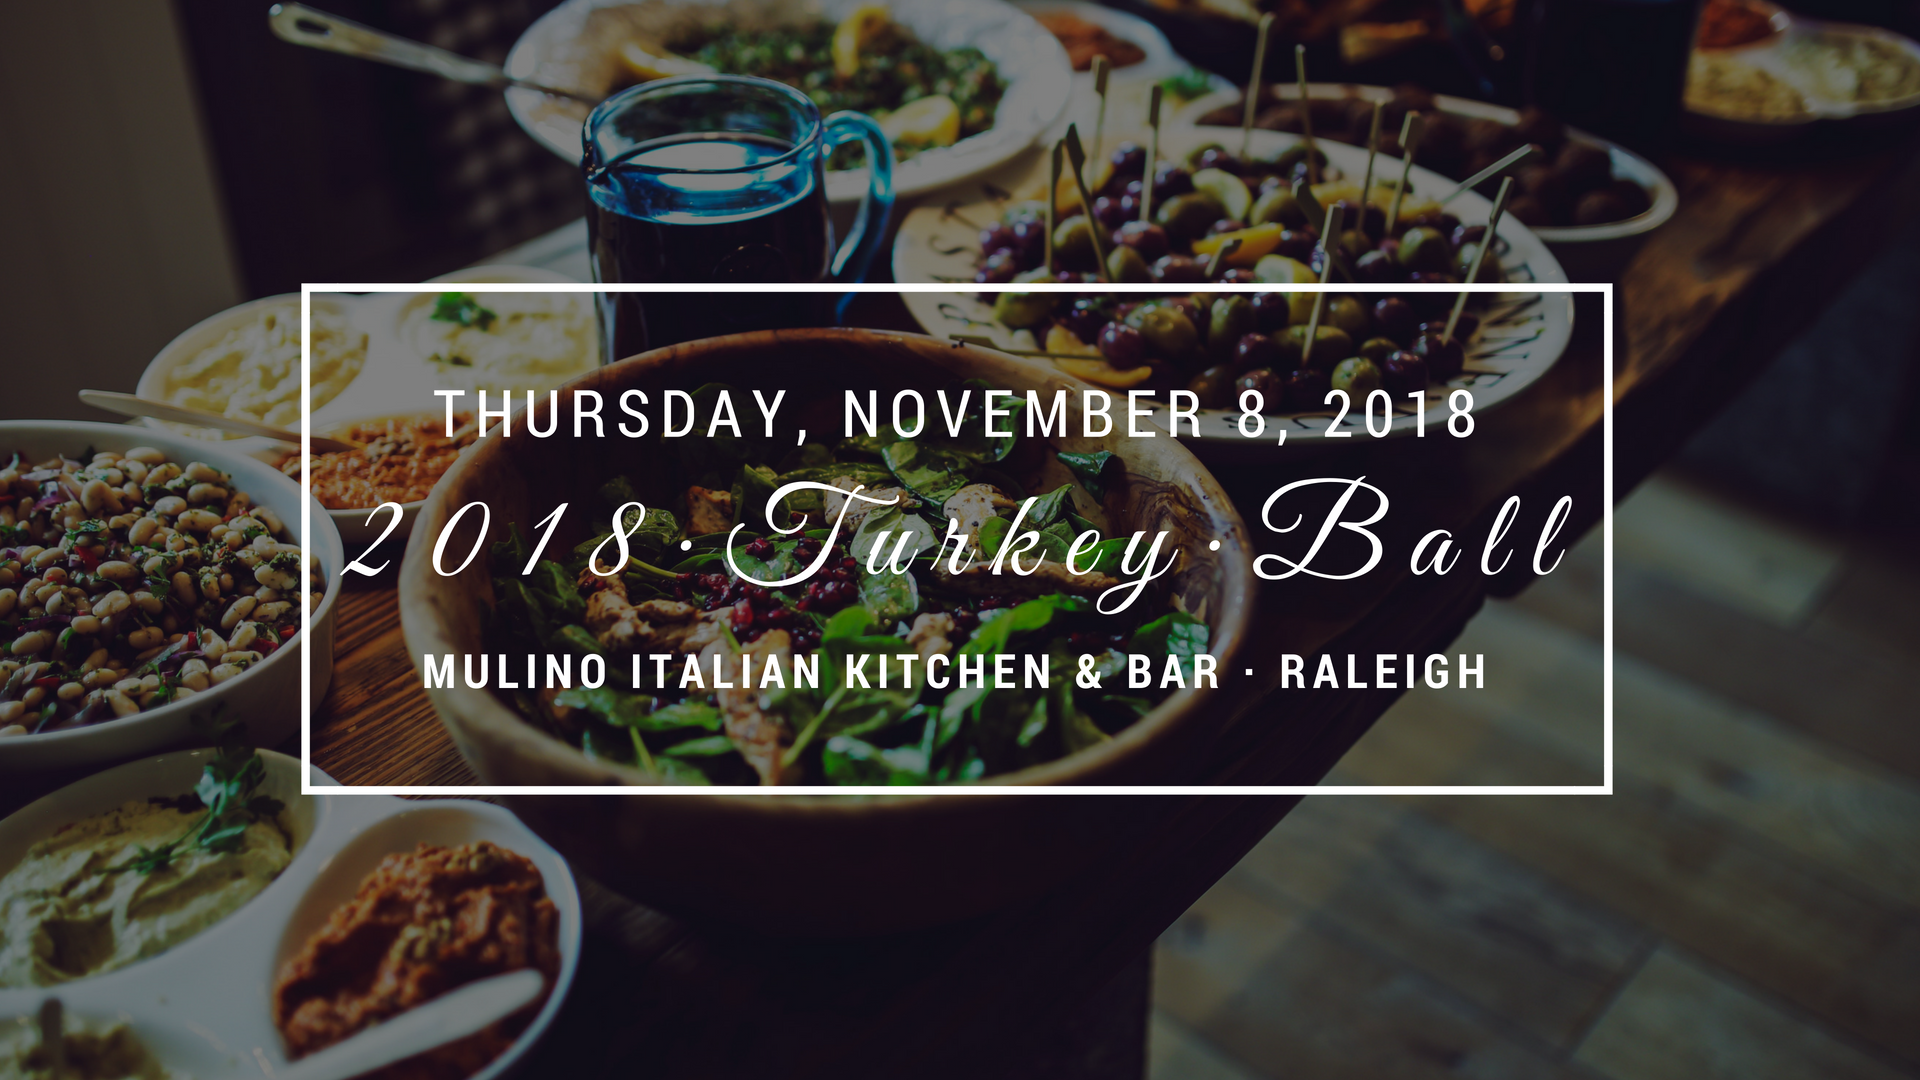 Turkey Ball Mulino Italian Kitchen Bar